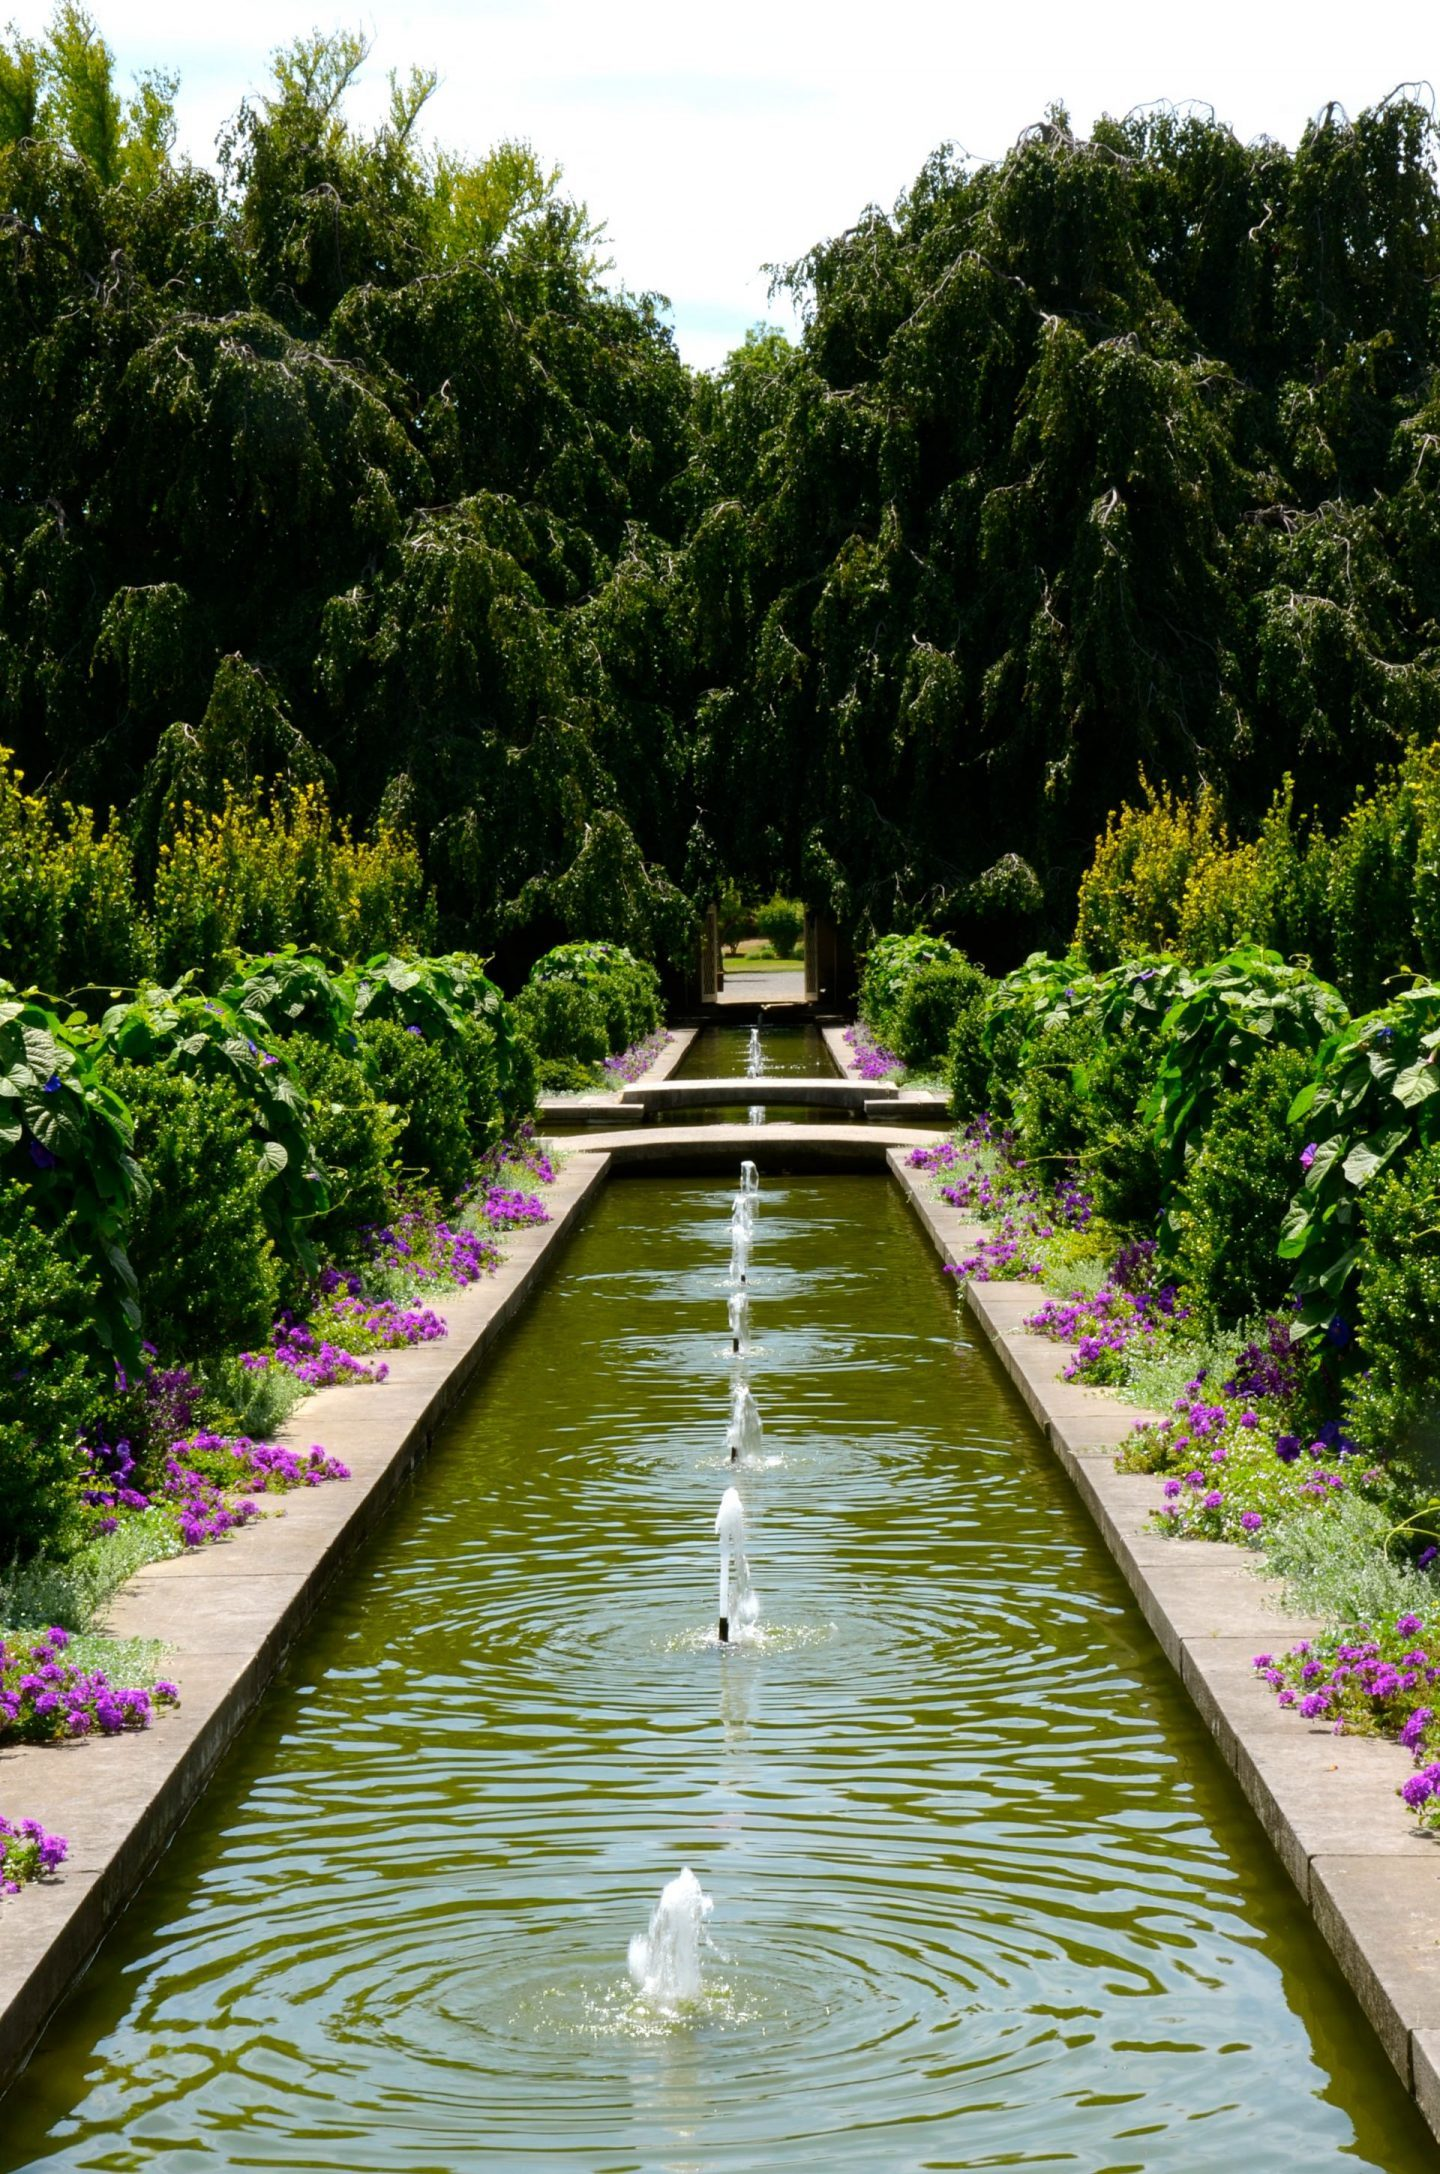 Water fountains and flowers in Untermyer Park and Gardens.